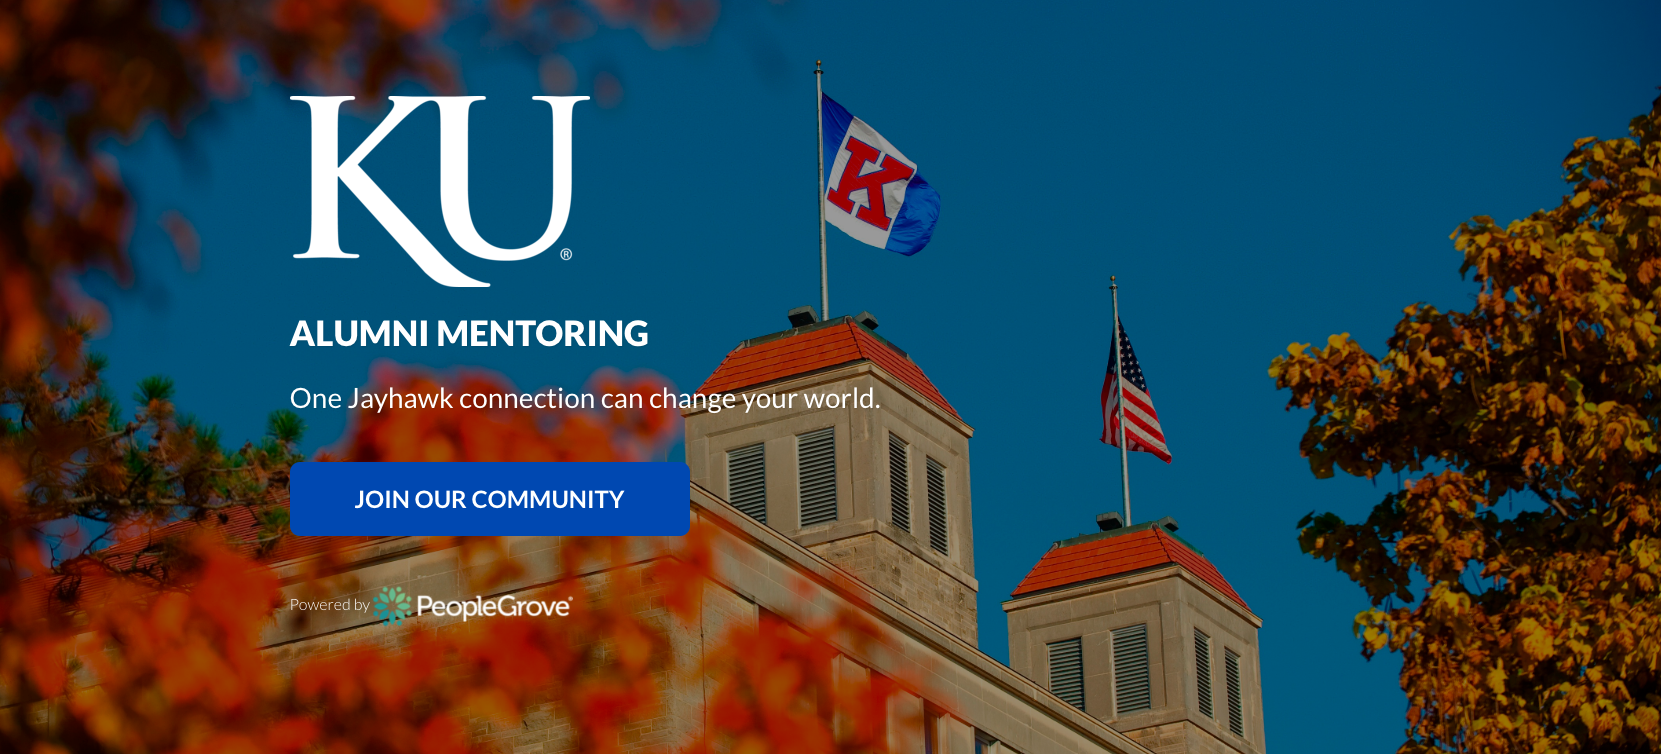 KU Alumni Association's Modern Approach to Alumni Engagement